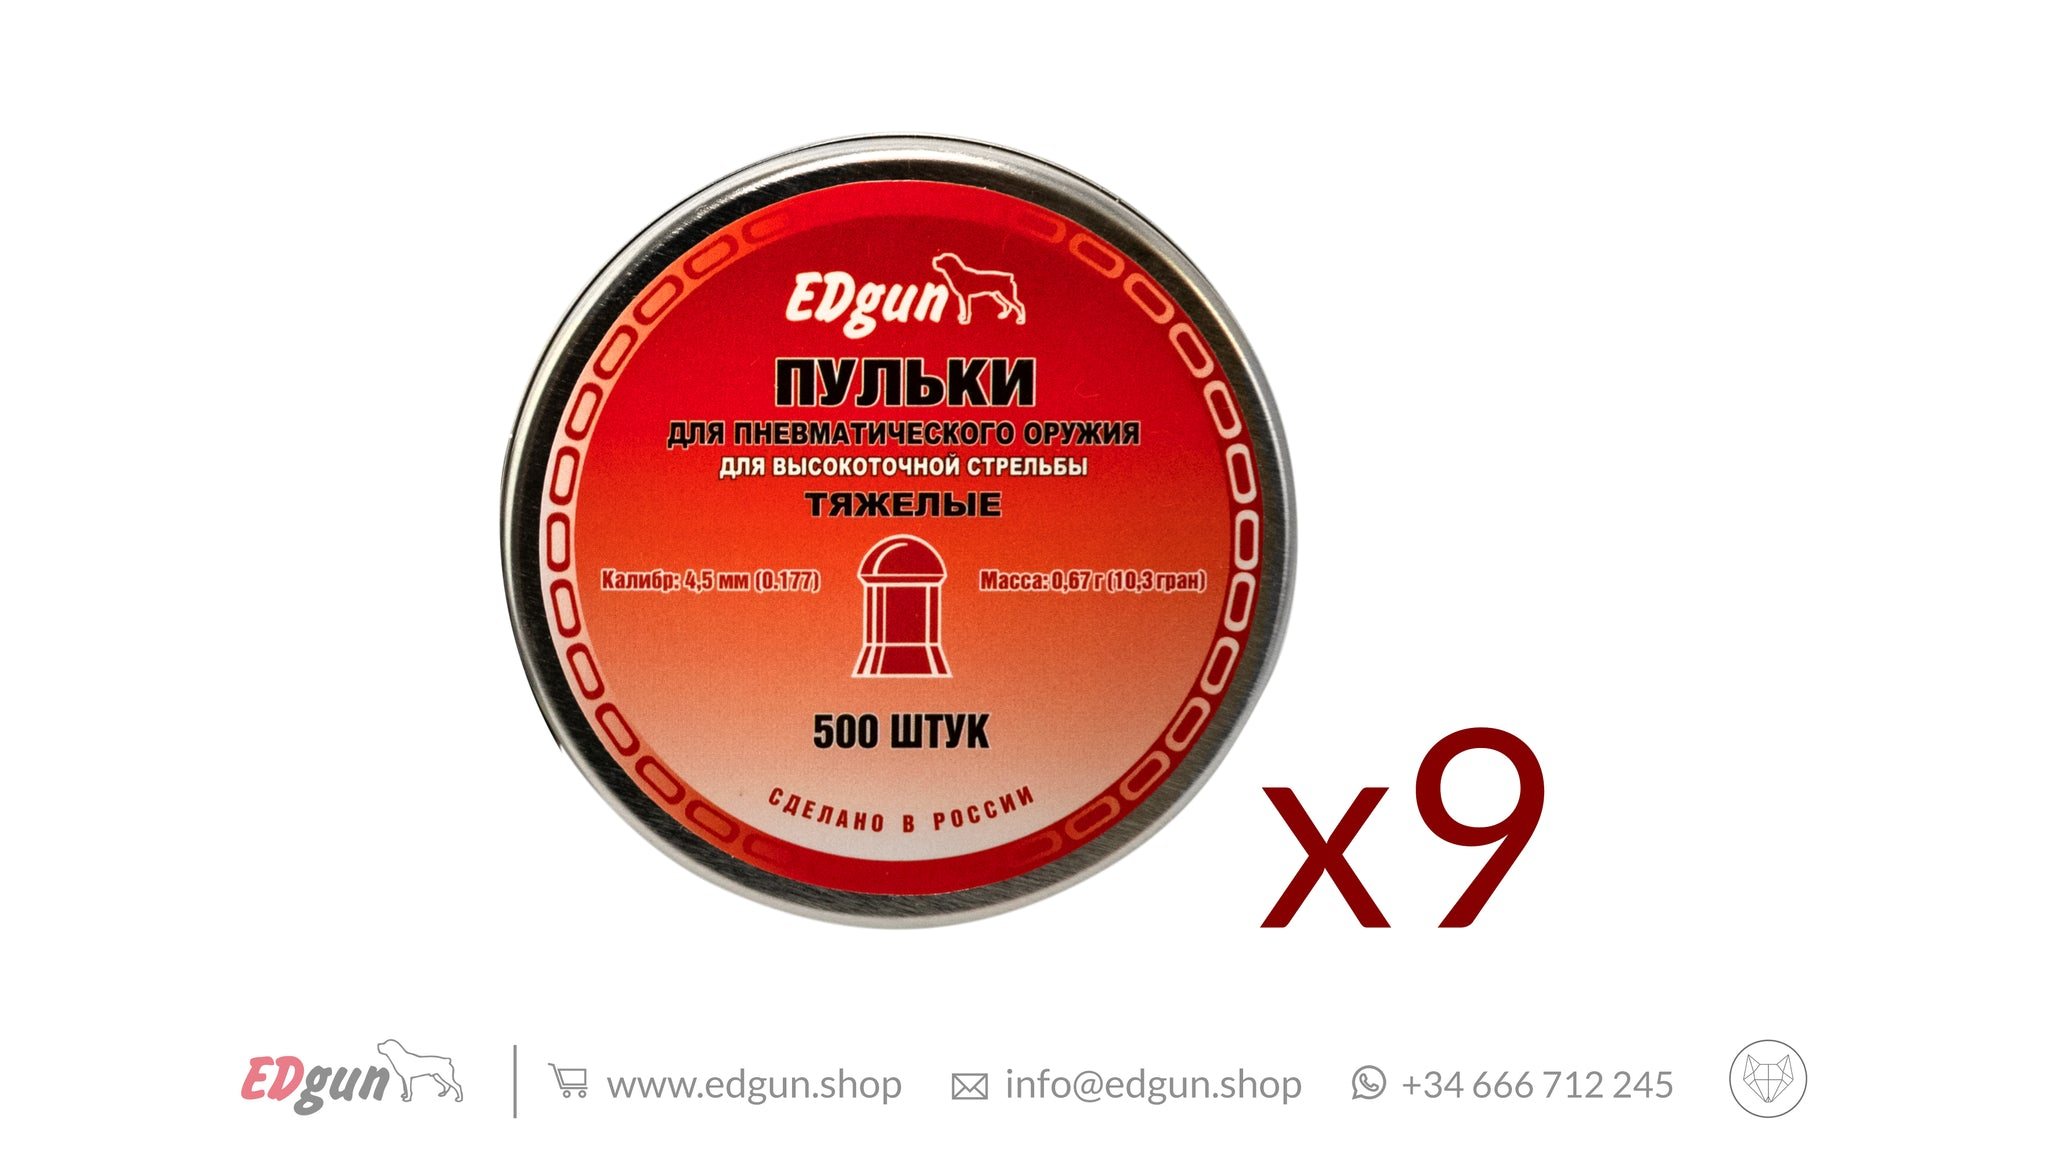 Пеллеты EDgun Premium Heavy <br /> Калибр .177 (4,52mm) и миддот; Вес 0,67g & nbsp; (10,34gr)